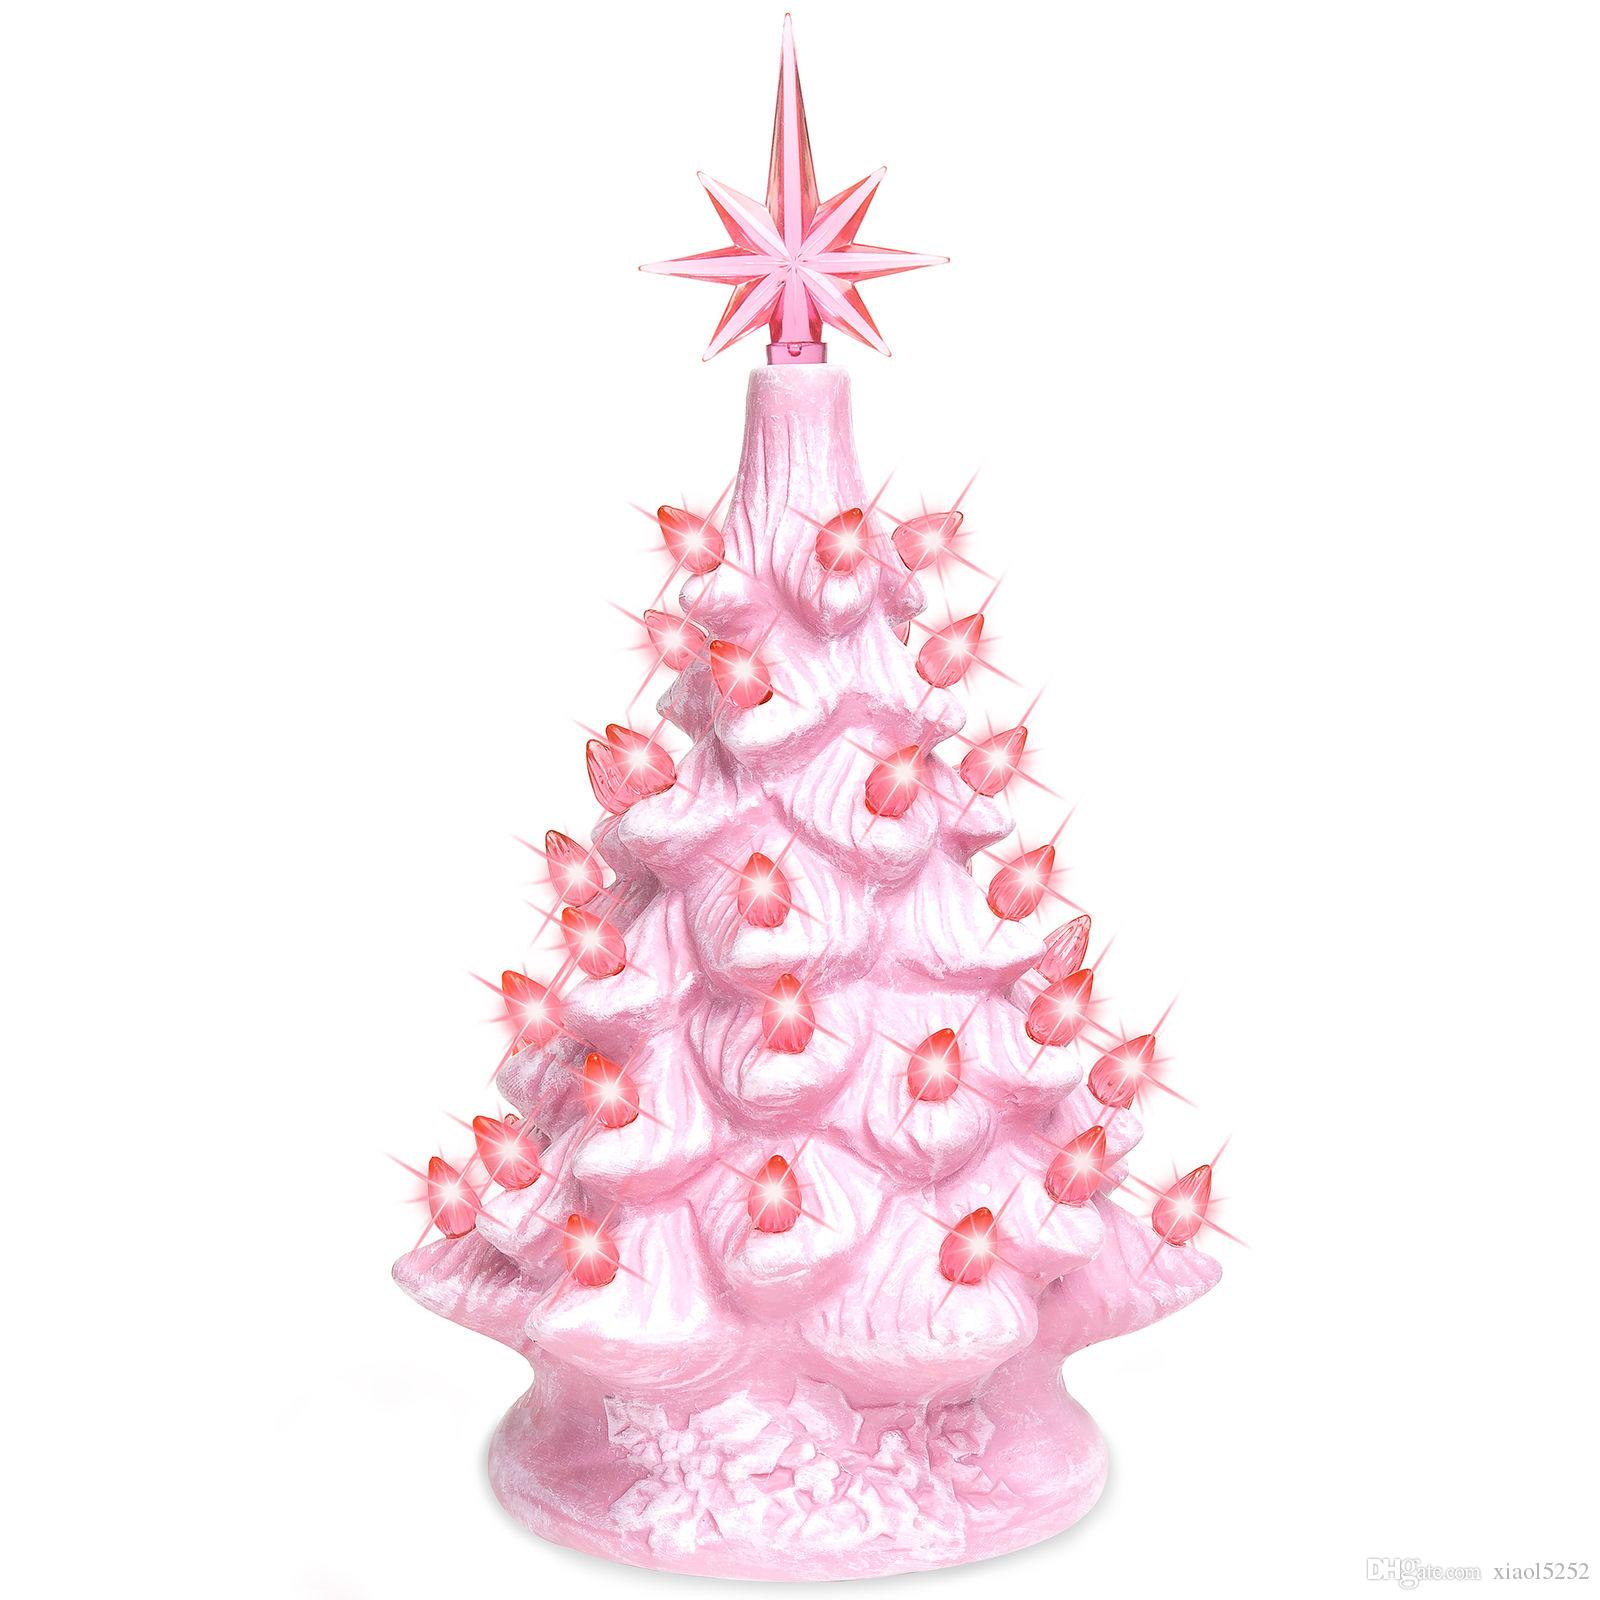 bcp 11in prelit ceramic tabletop christmas tree w lights pink ornaments christmas ornaments for christmas from xiaol5252 3016 dhgatecom